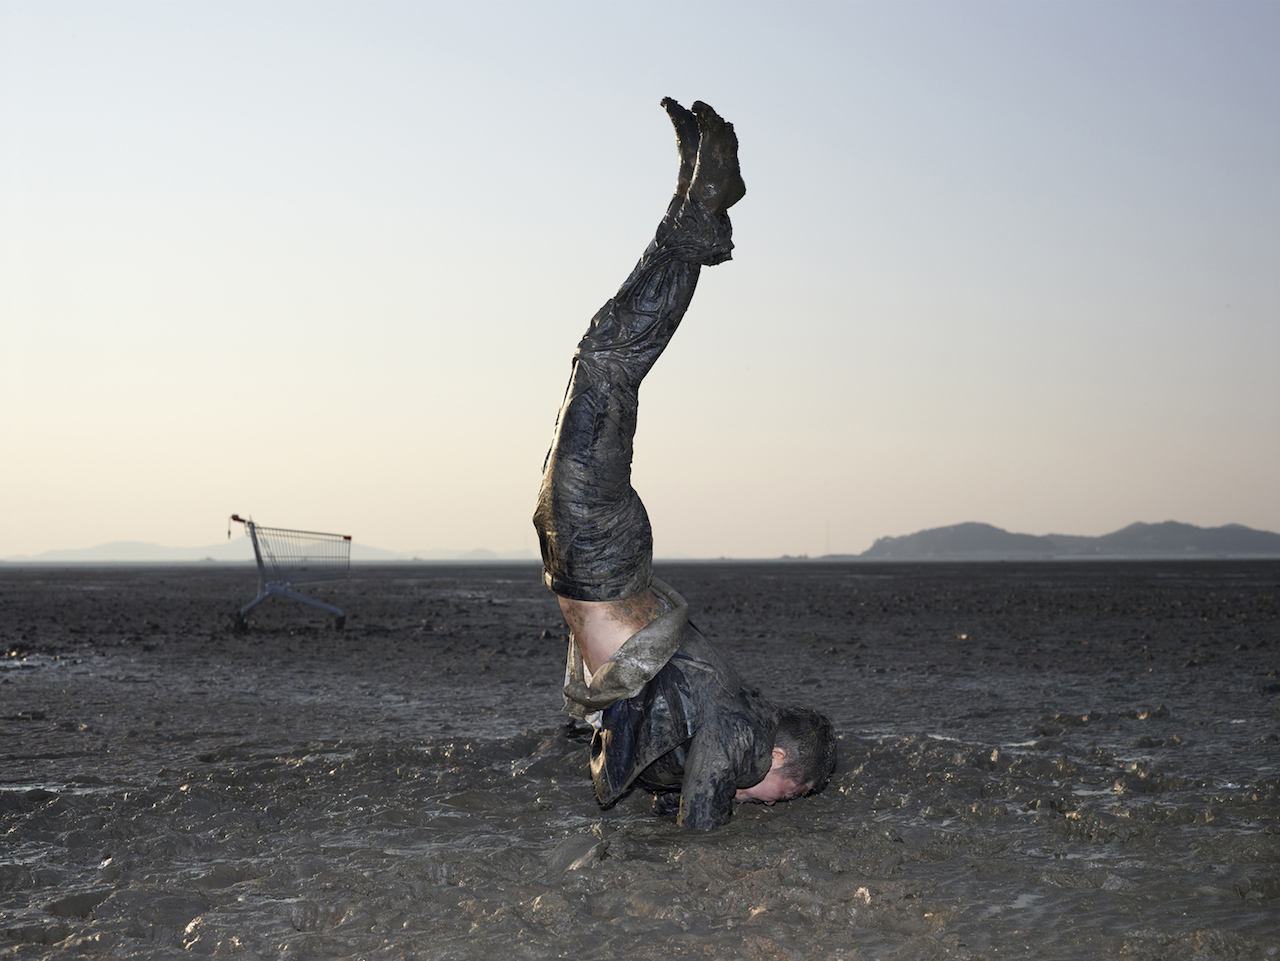 'Supported Armstand Pose', photograph, archival pigment print, 127x152cm, 2011